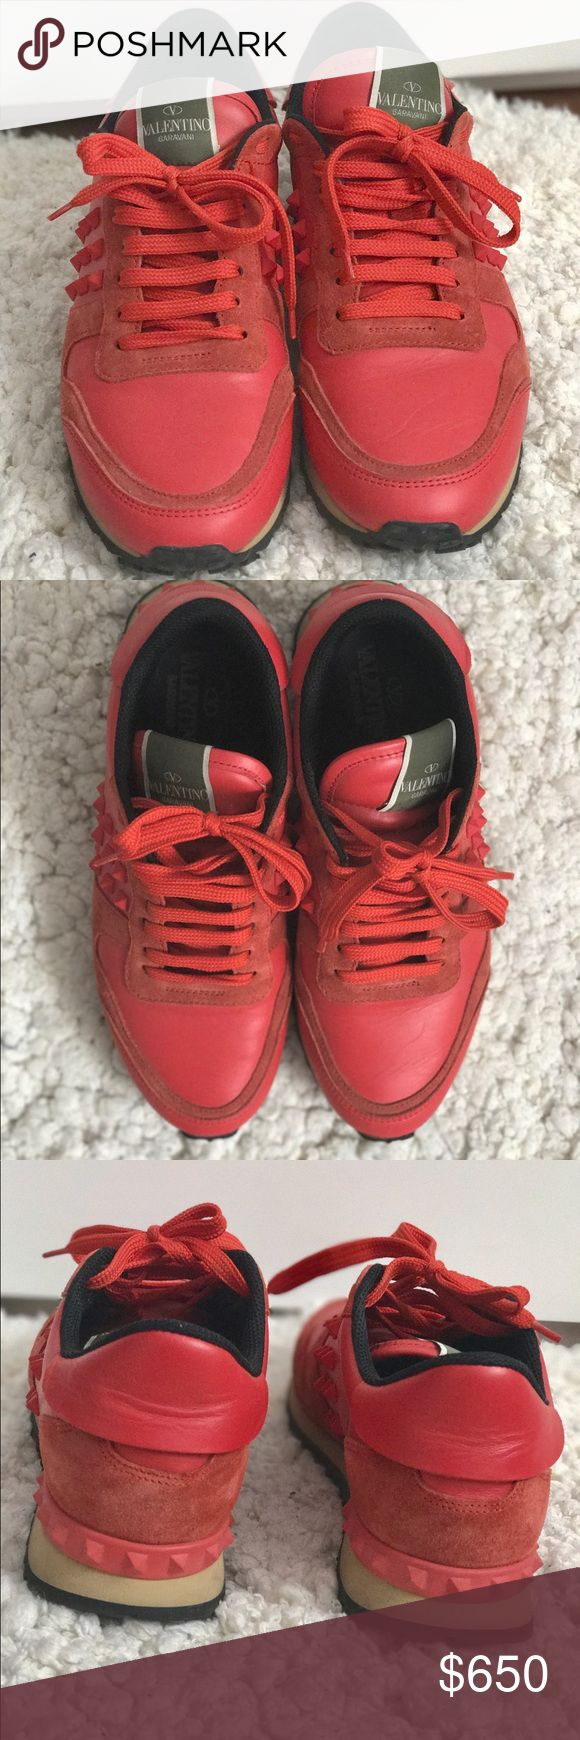 Valentino rockstud sneaker Beautiful red leather sneaker with beige rubber midsole. Black threaded rubber outsole. Fit true to size and very comfy. Size: 39. Come with original dust bag and valentino box. Valentino Shoes Sneakers